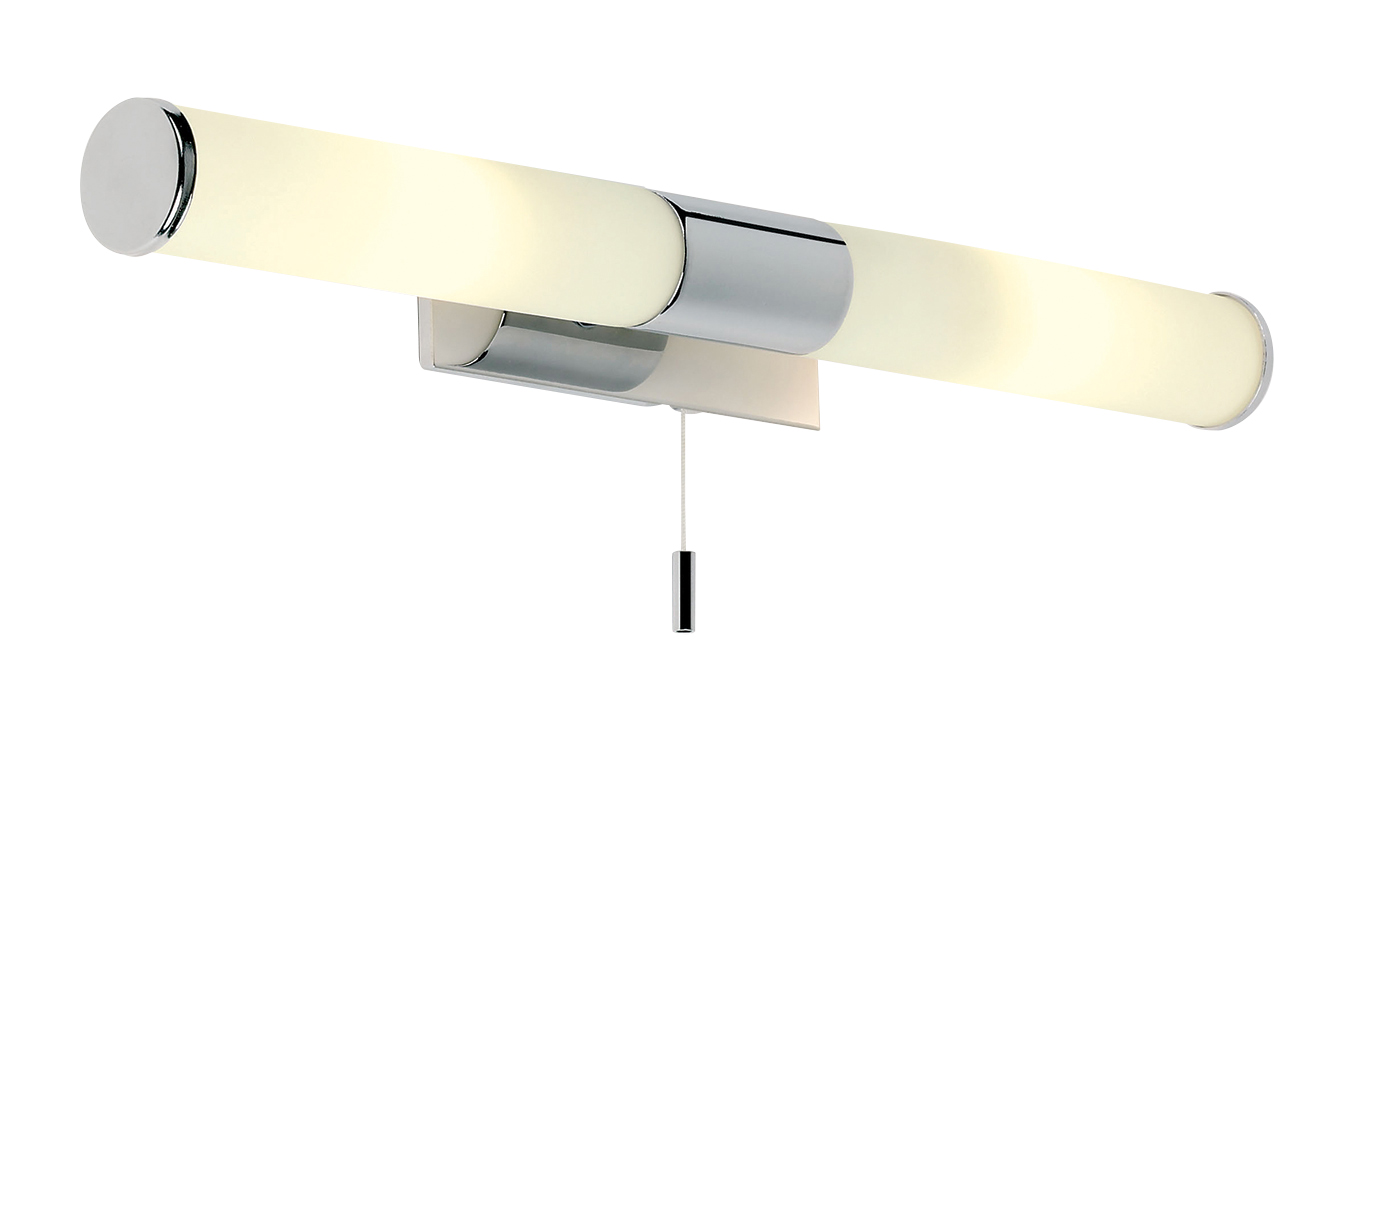 Endon Romford 2lt bathroom wall light IP44 25W Chrome & opal glass pull cord Thumbnail 1